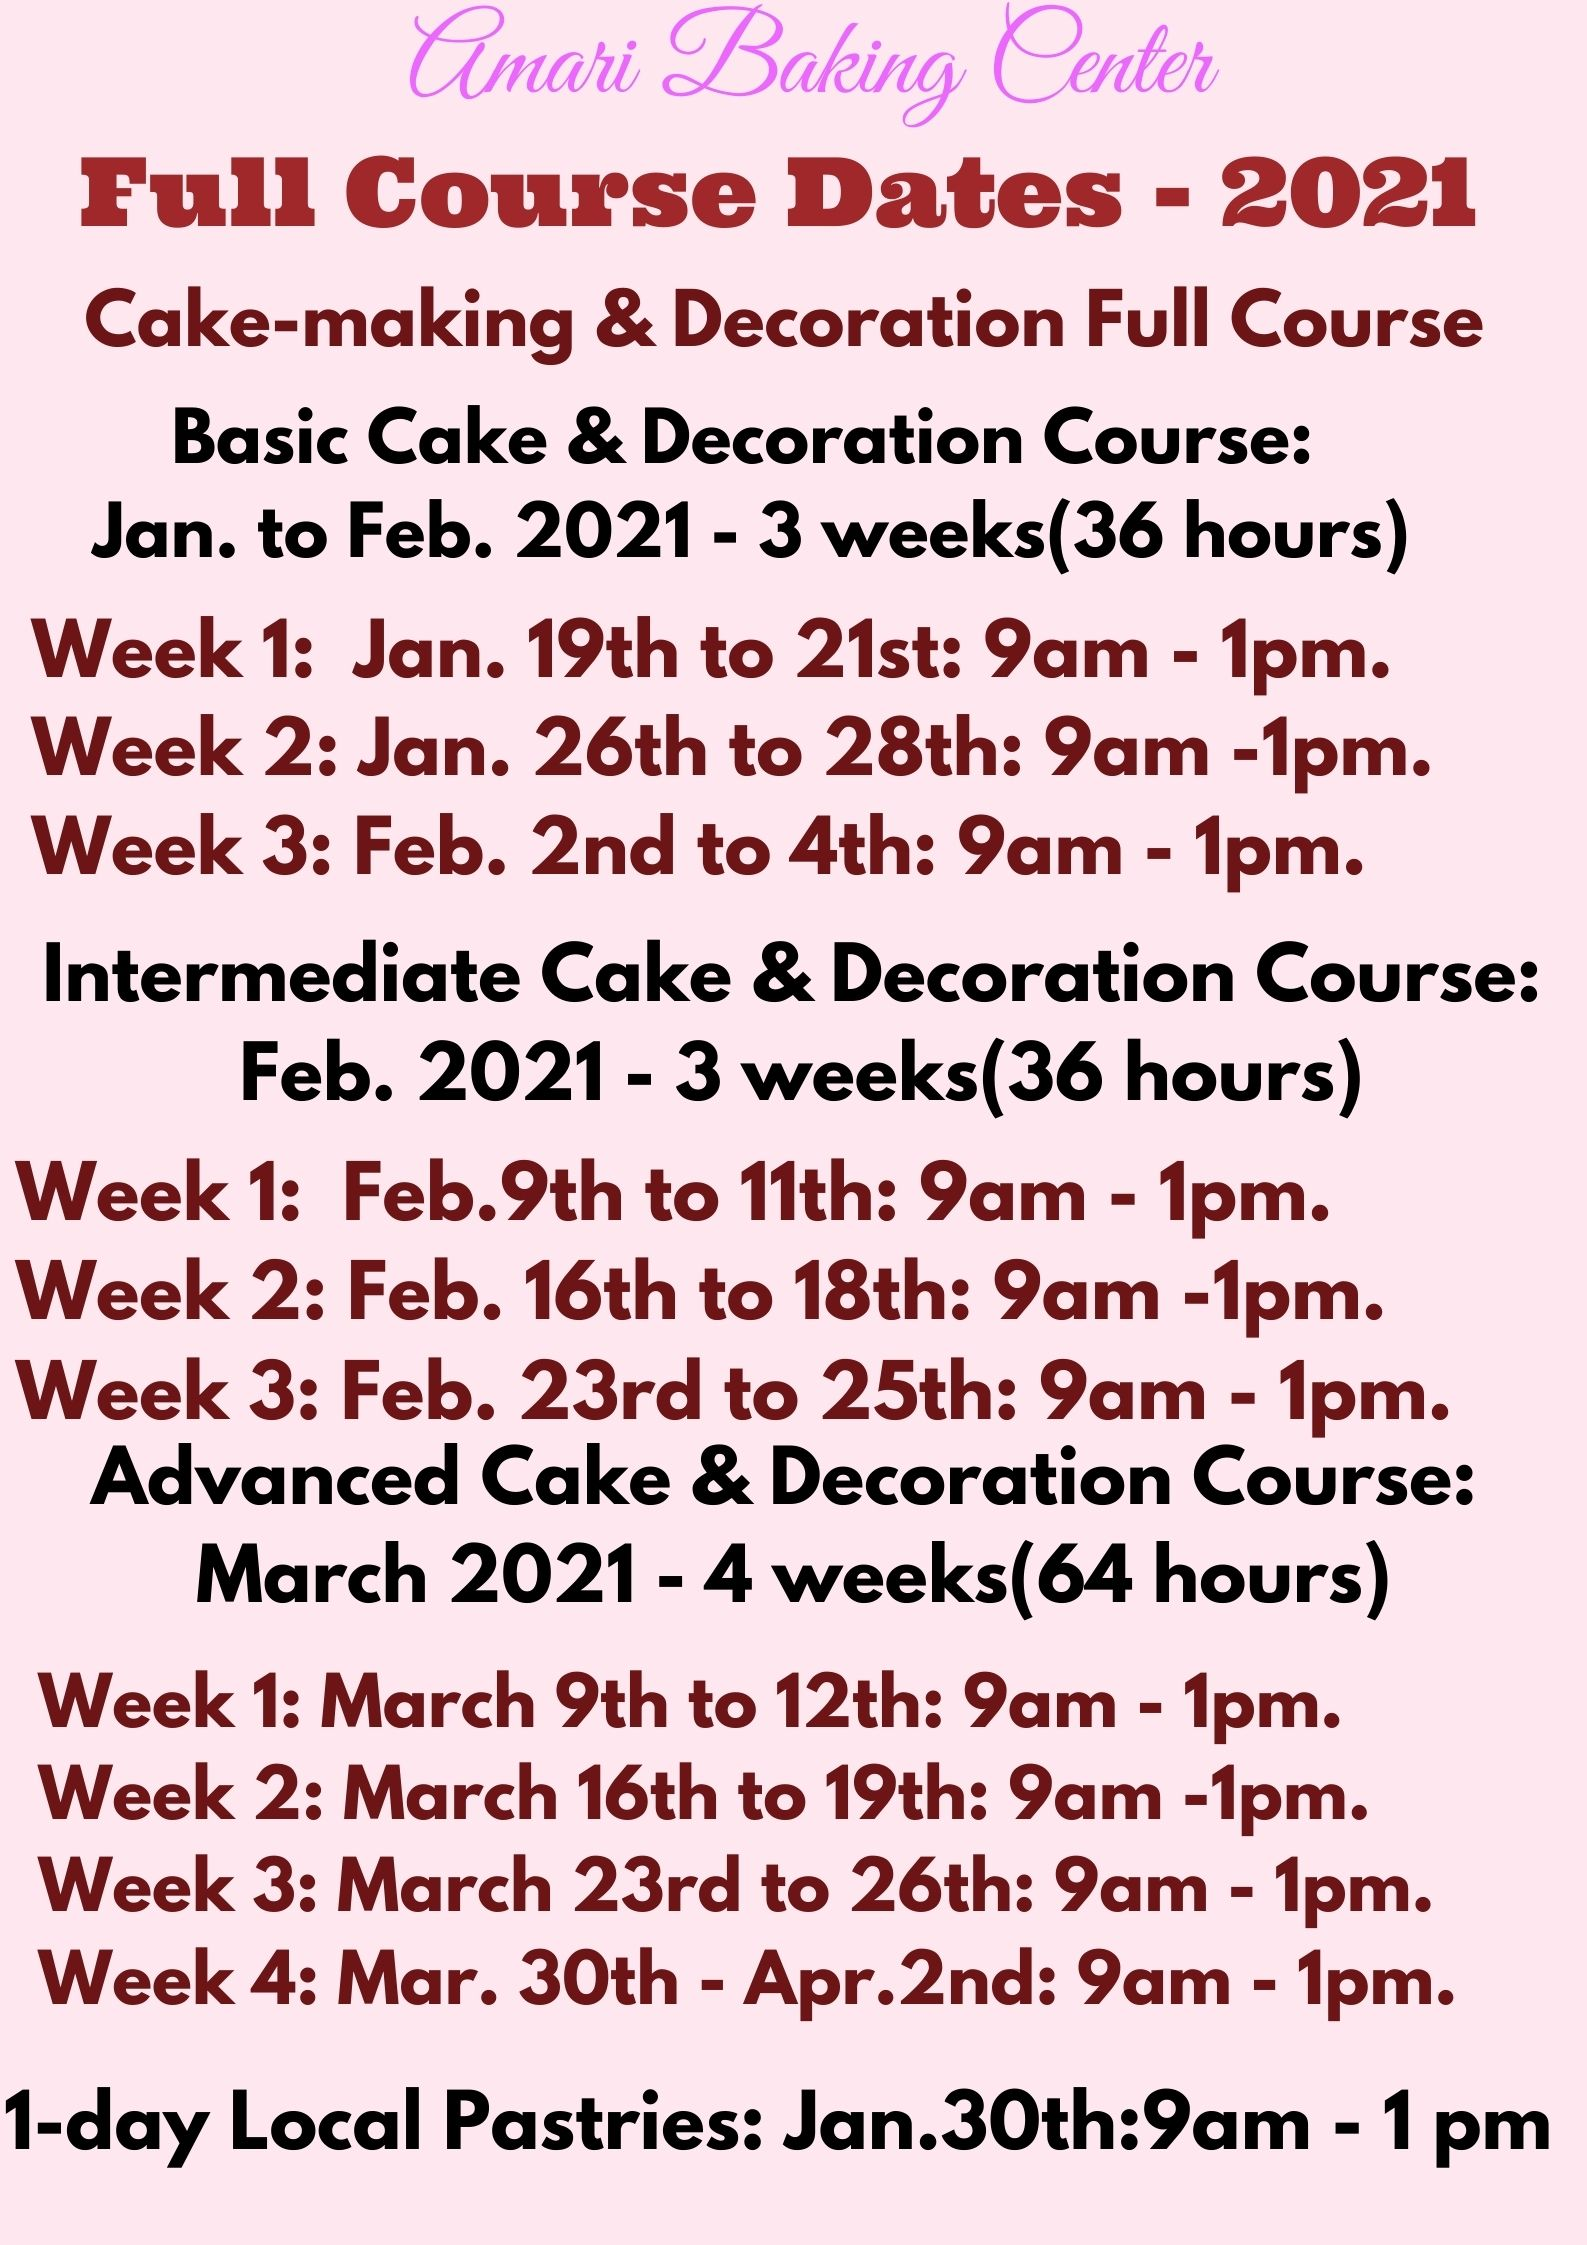 Cake and Deco Full Course dates - Jan to March 2021 Amari Baking Center